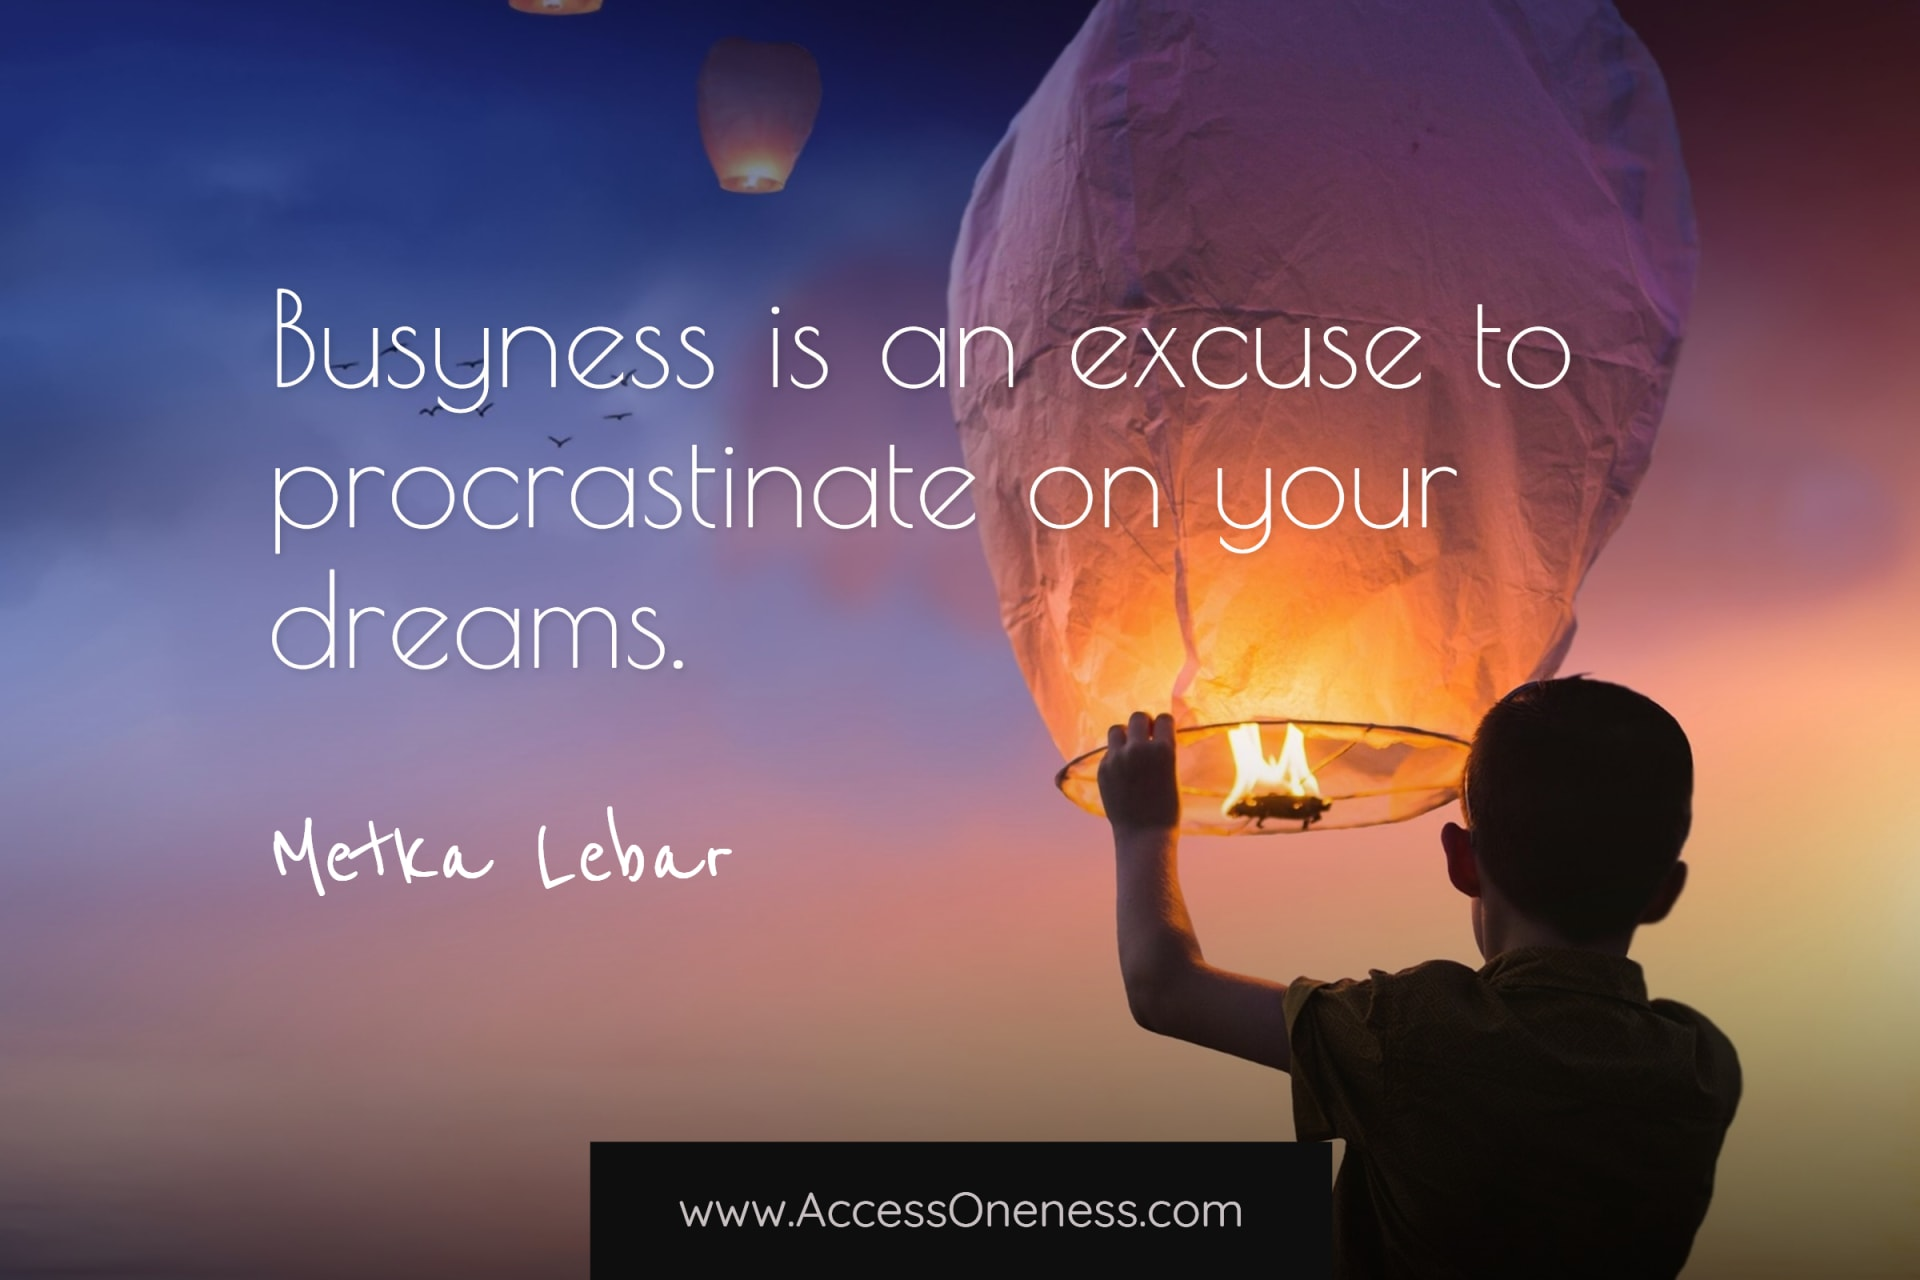 Busyness is an excuse to procrastinate on your dreams